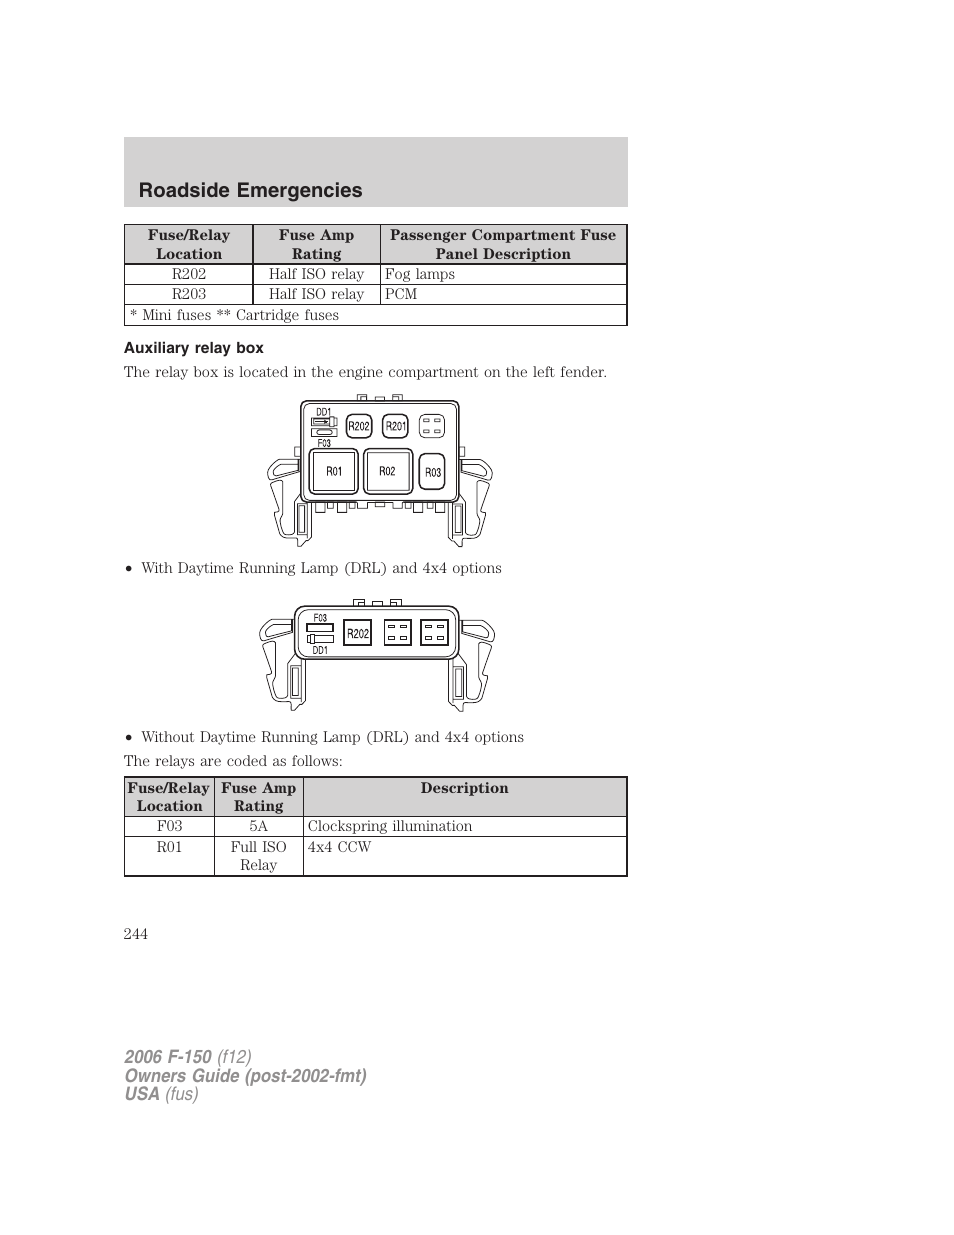 auxiliary relay box, roadside emergencies | ford 2006 f-150 v 2 user manual  | page 244 / 336